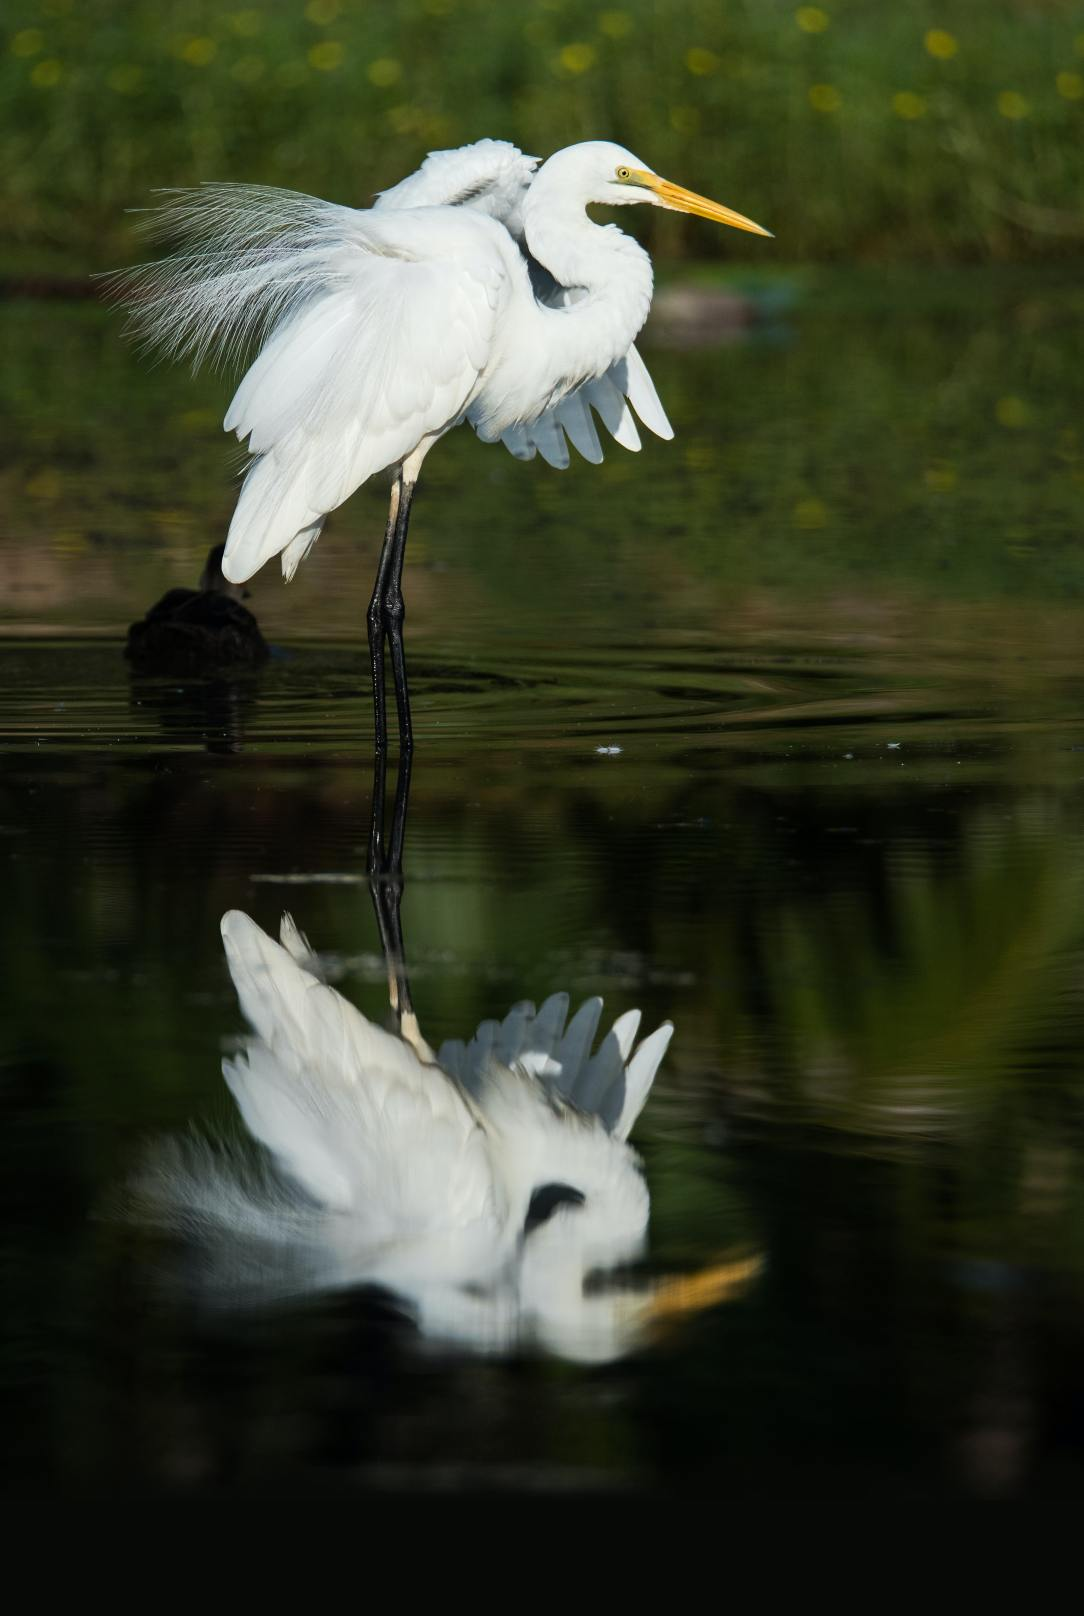 Photo of an egret and its reflection.